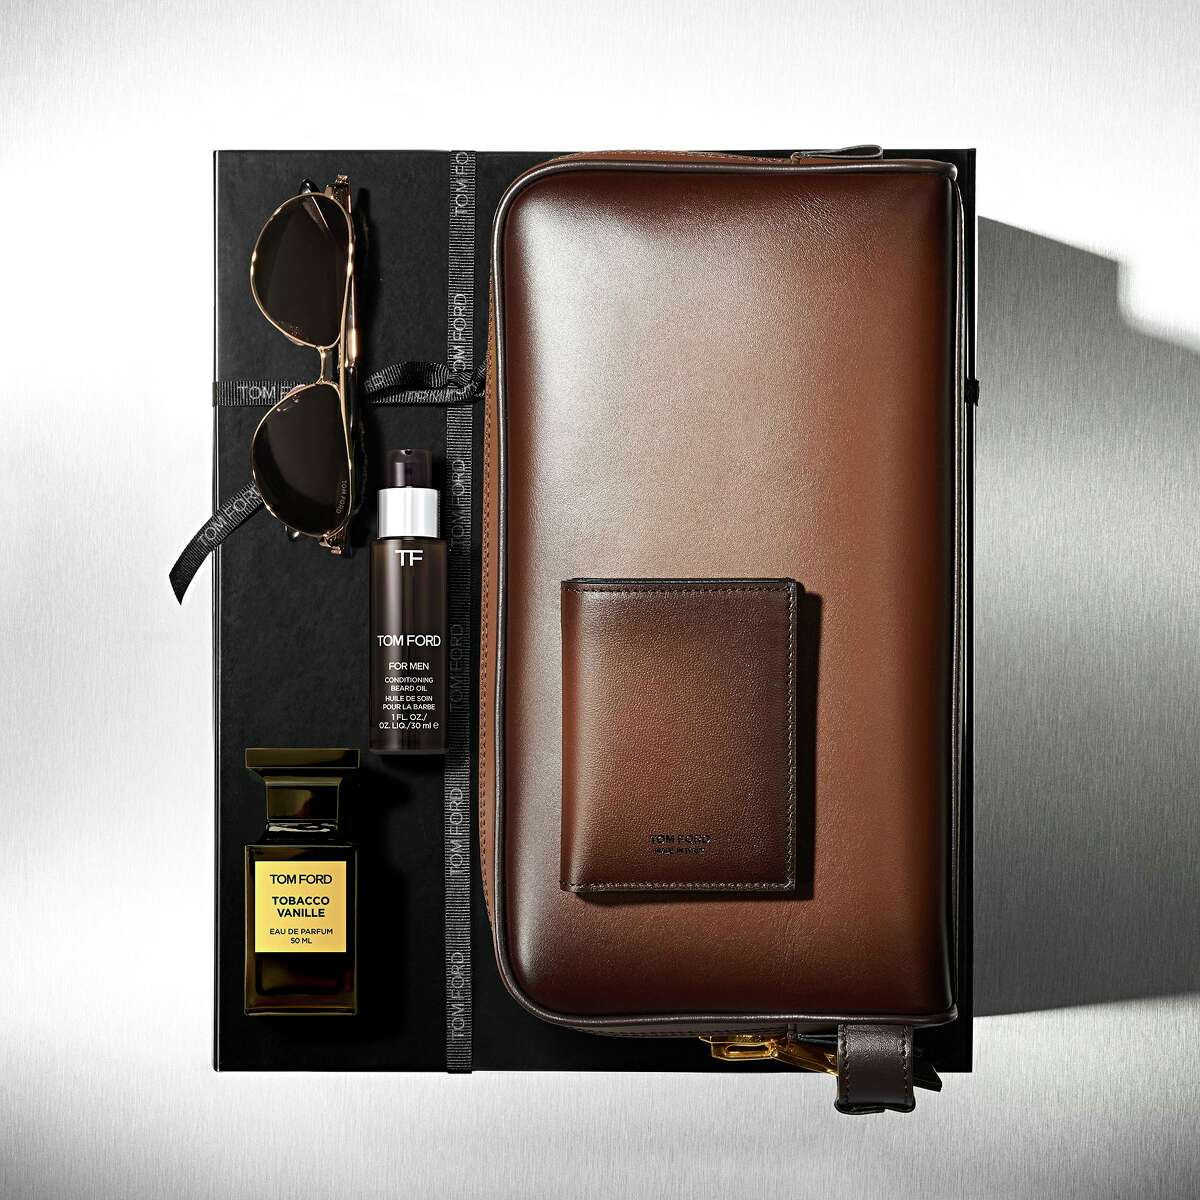 Tom Ford has created exclusive Father's Day gifts including this Tobacco Vanille Luxe Set that includes Tobacco Vanille cologne and beard oil (think of a scent that suggests an opulent English gentleman's club), sunglasses, and burnished leather toiletry bag and folding card holder; $2,775 at tomford.com for delivery to Tom Ford, Galleria.